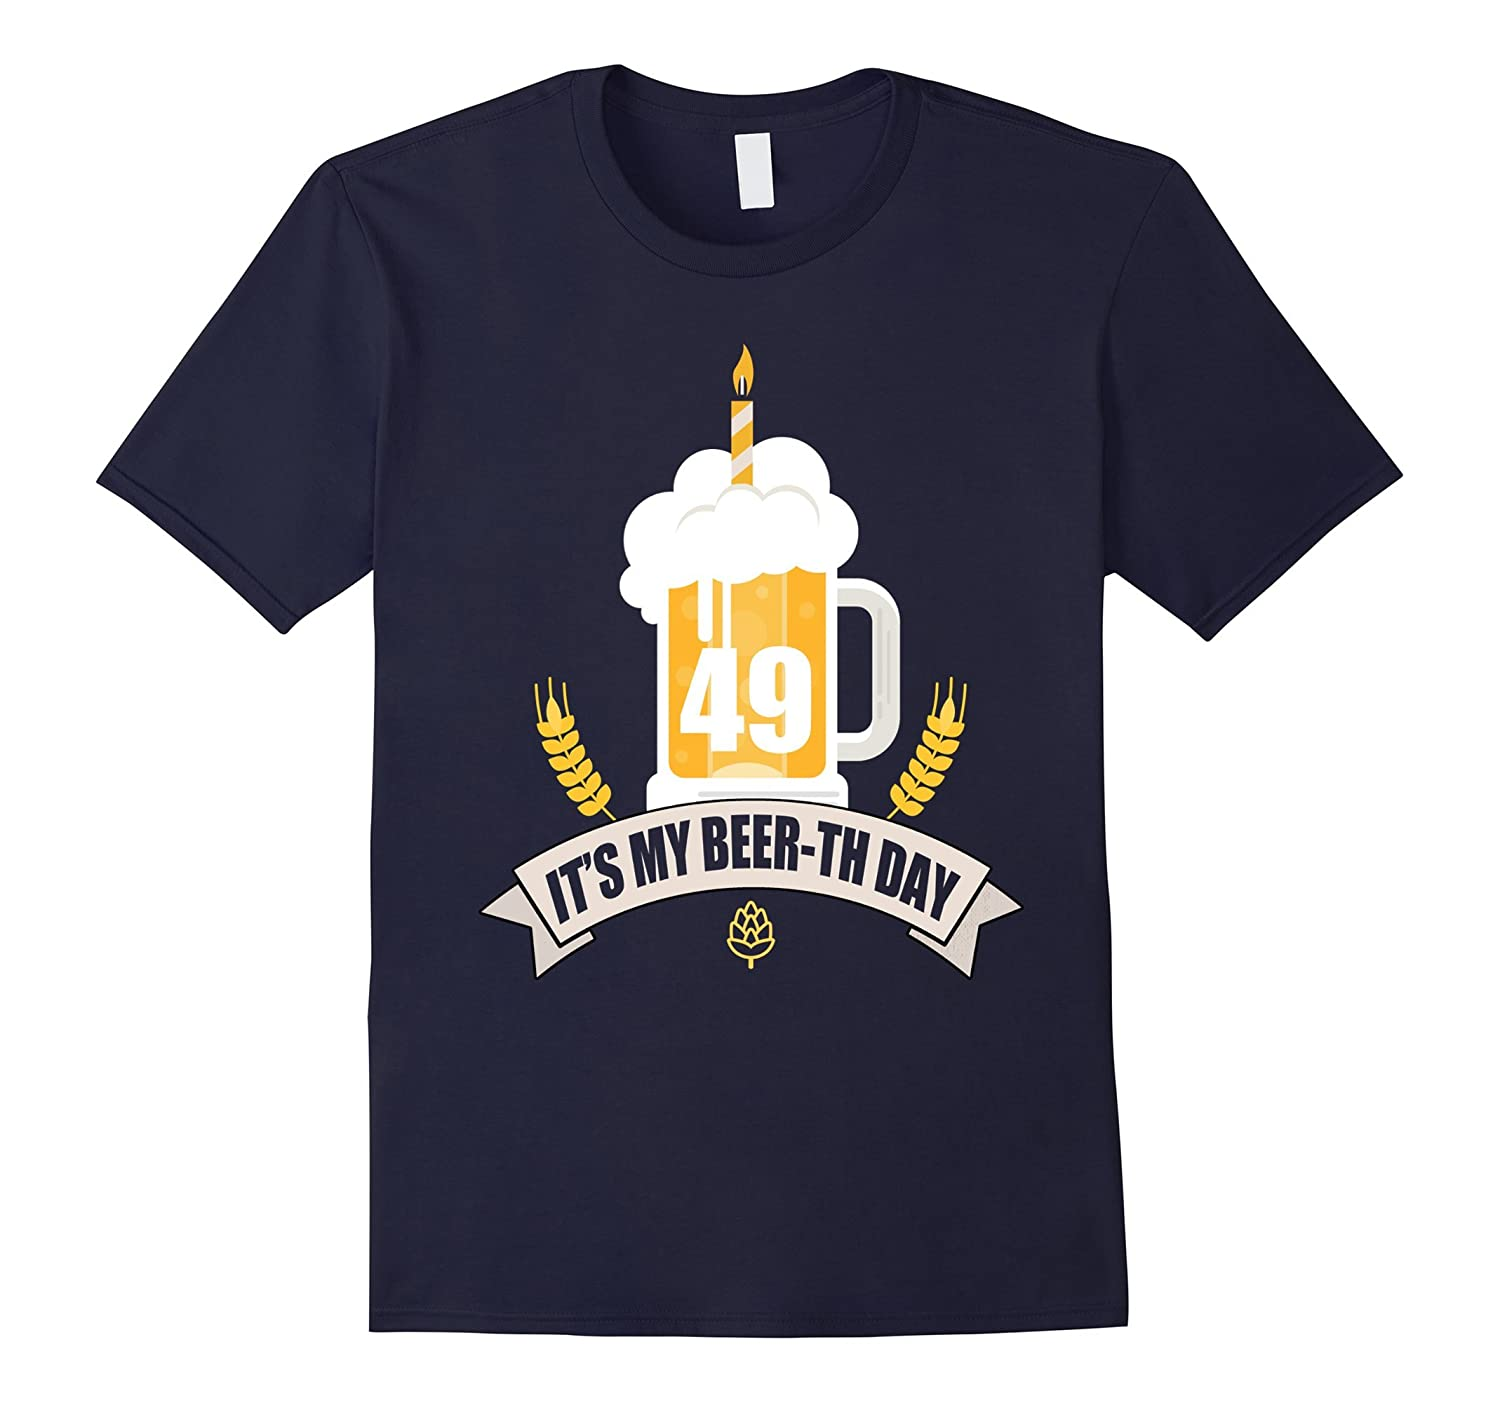 49th Birthday T-Shirt Its my Beer-th Day Funny Beer Shirt-Art